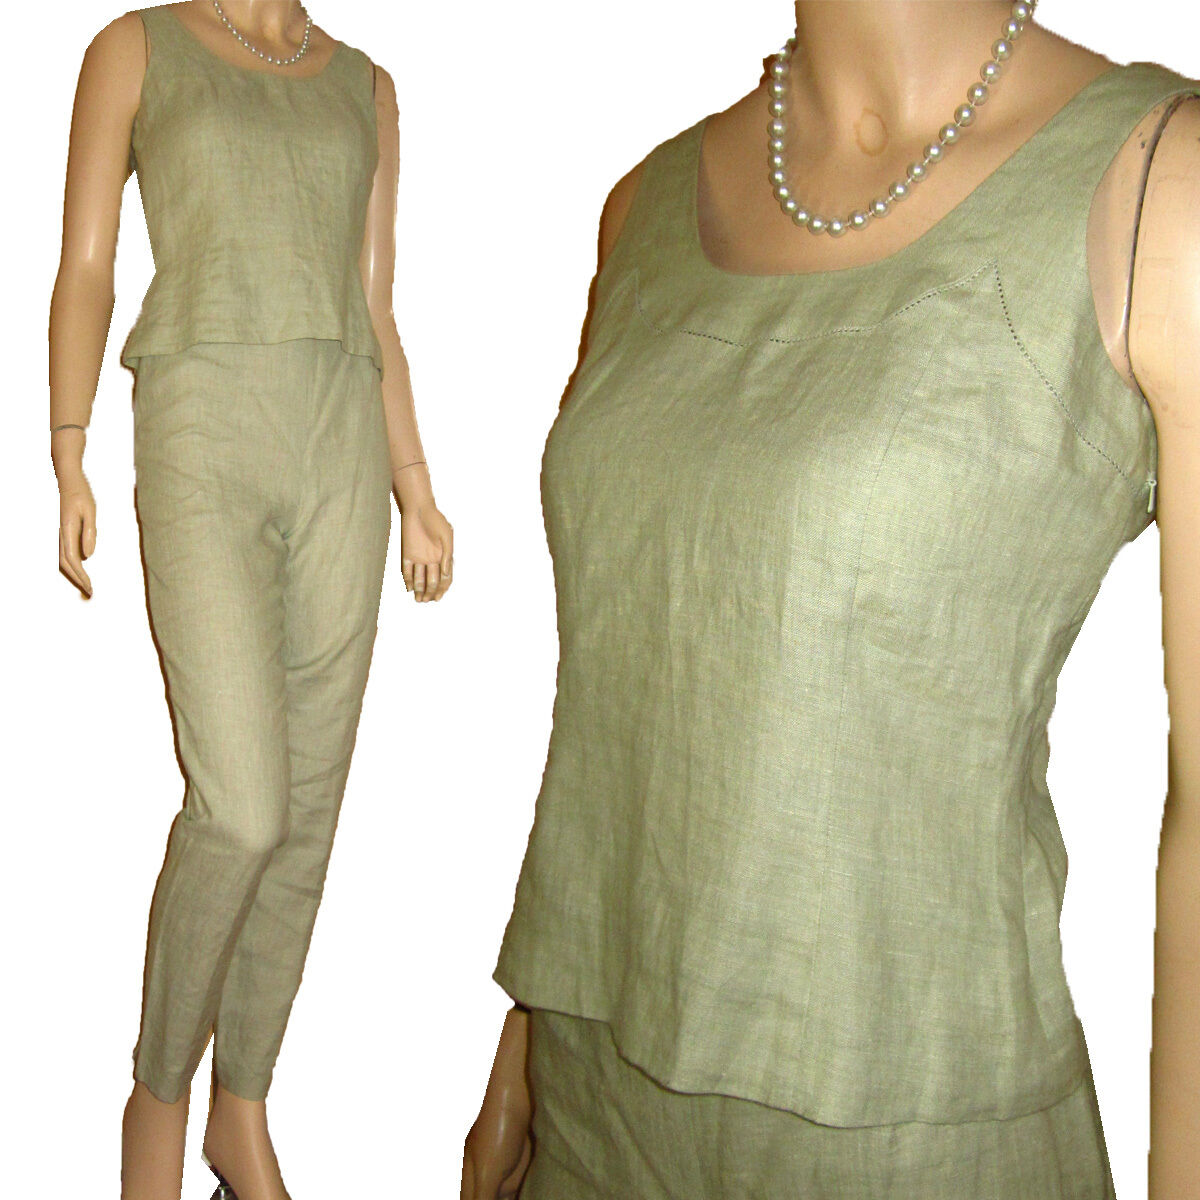 New  310 MAG MAGASCHONI - LINEN PANT SUIT Sz 2 SAGE Ensemble Set Outfit